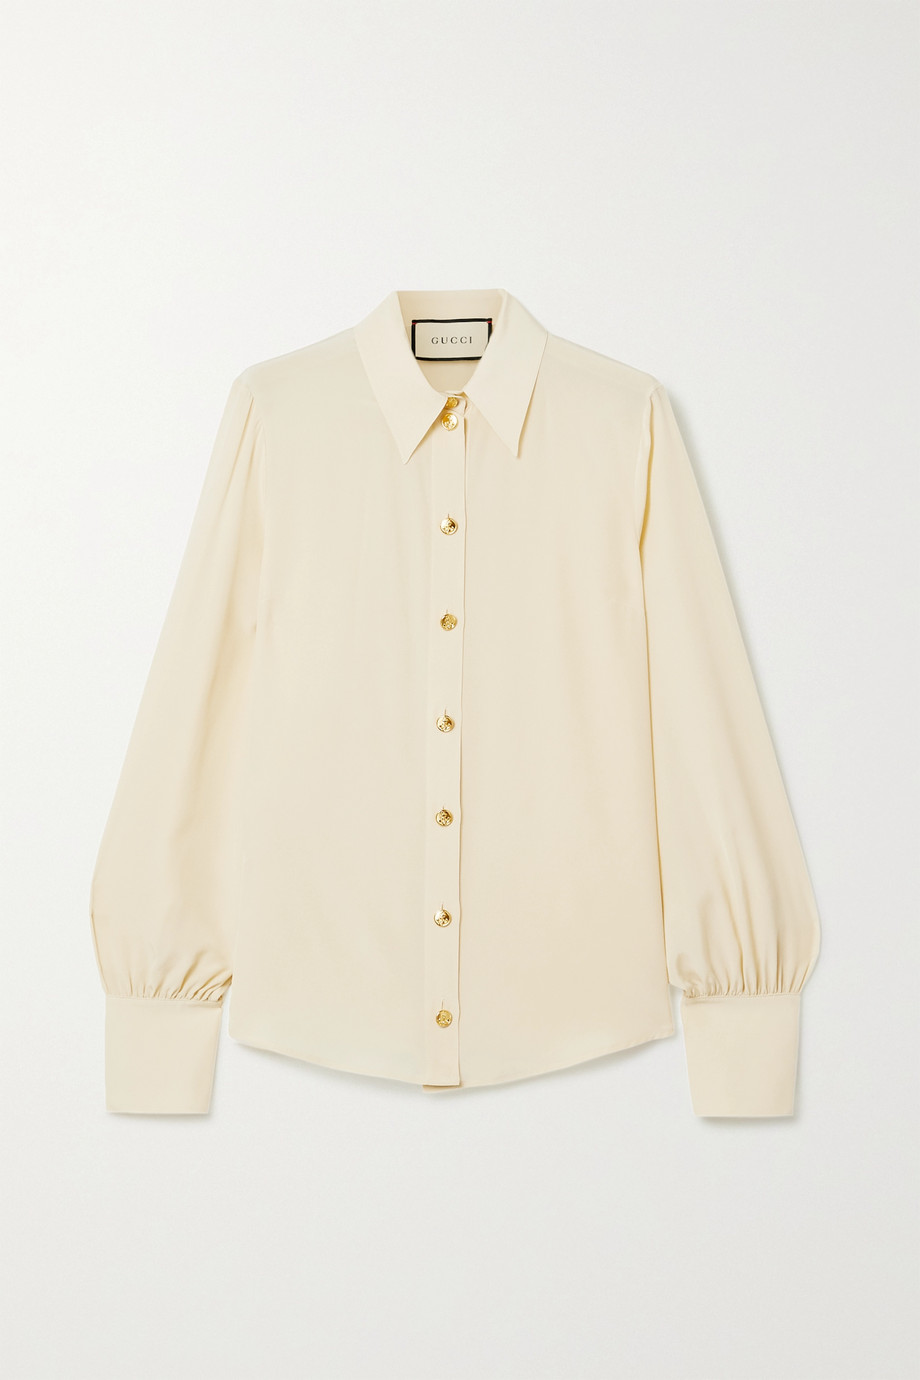 Gucci + NET SUSTAIN organic silk crepe de chine shirt